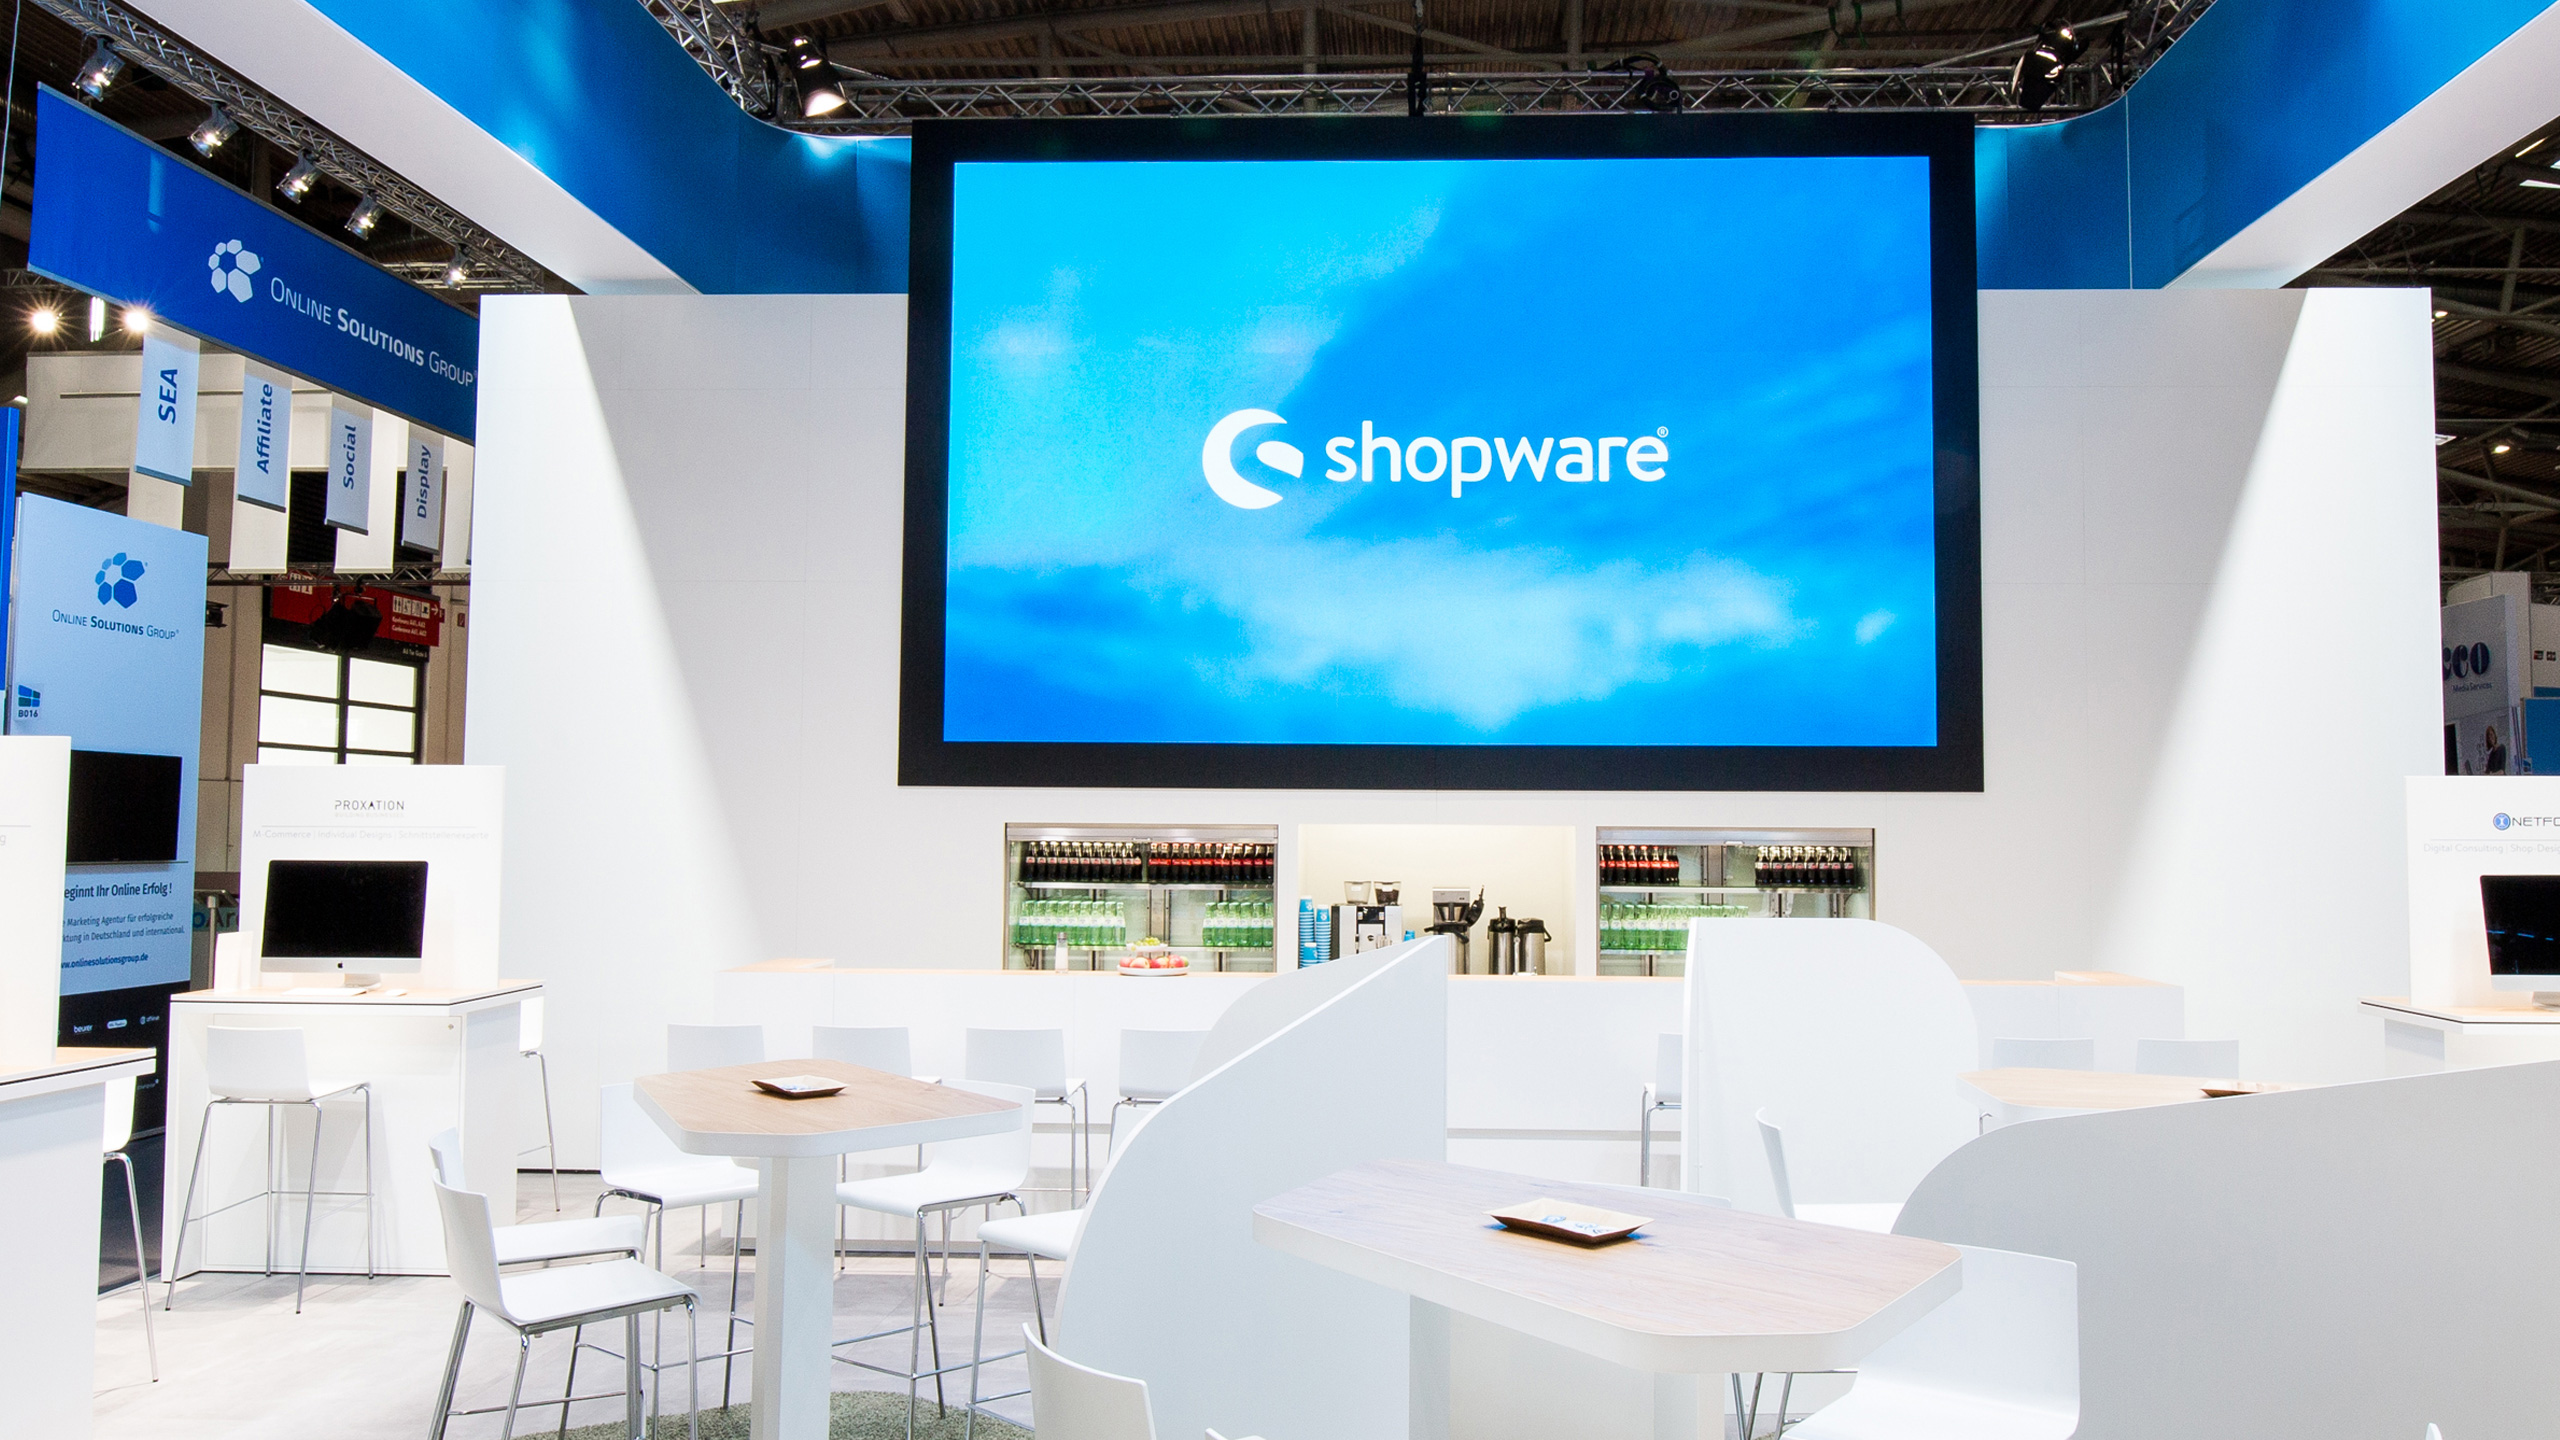 shopware Internet World Expo 03